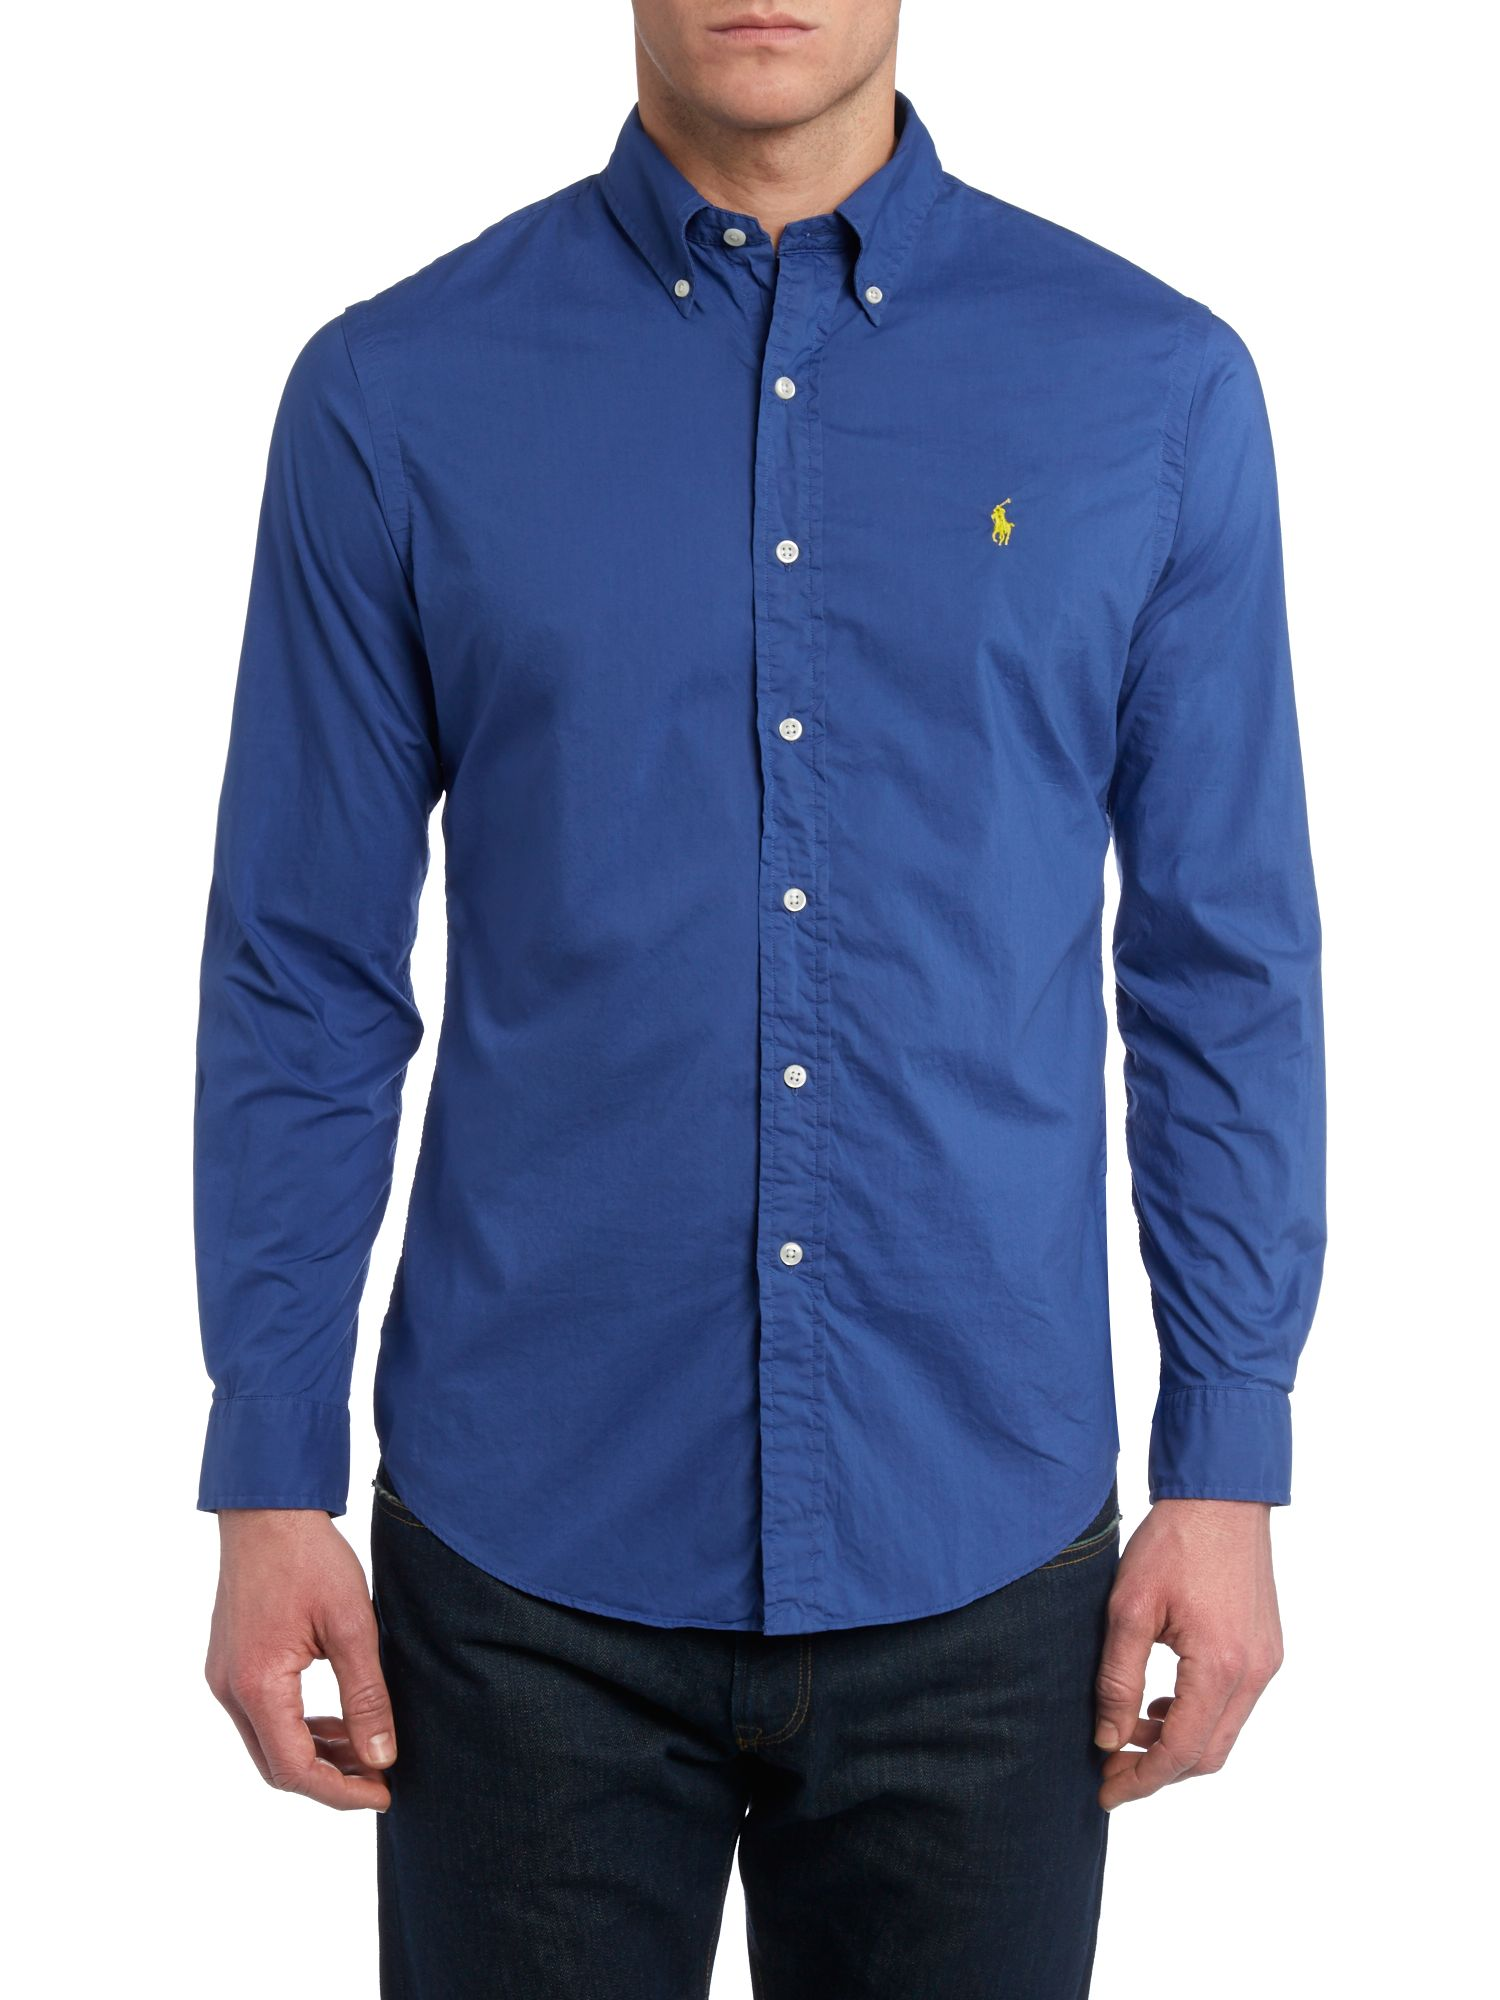 Classic long sleeve custom fit shirt